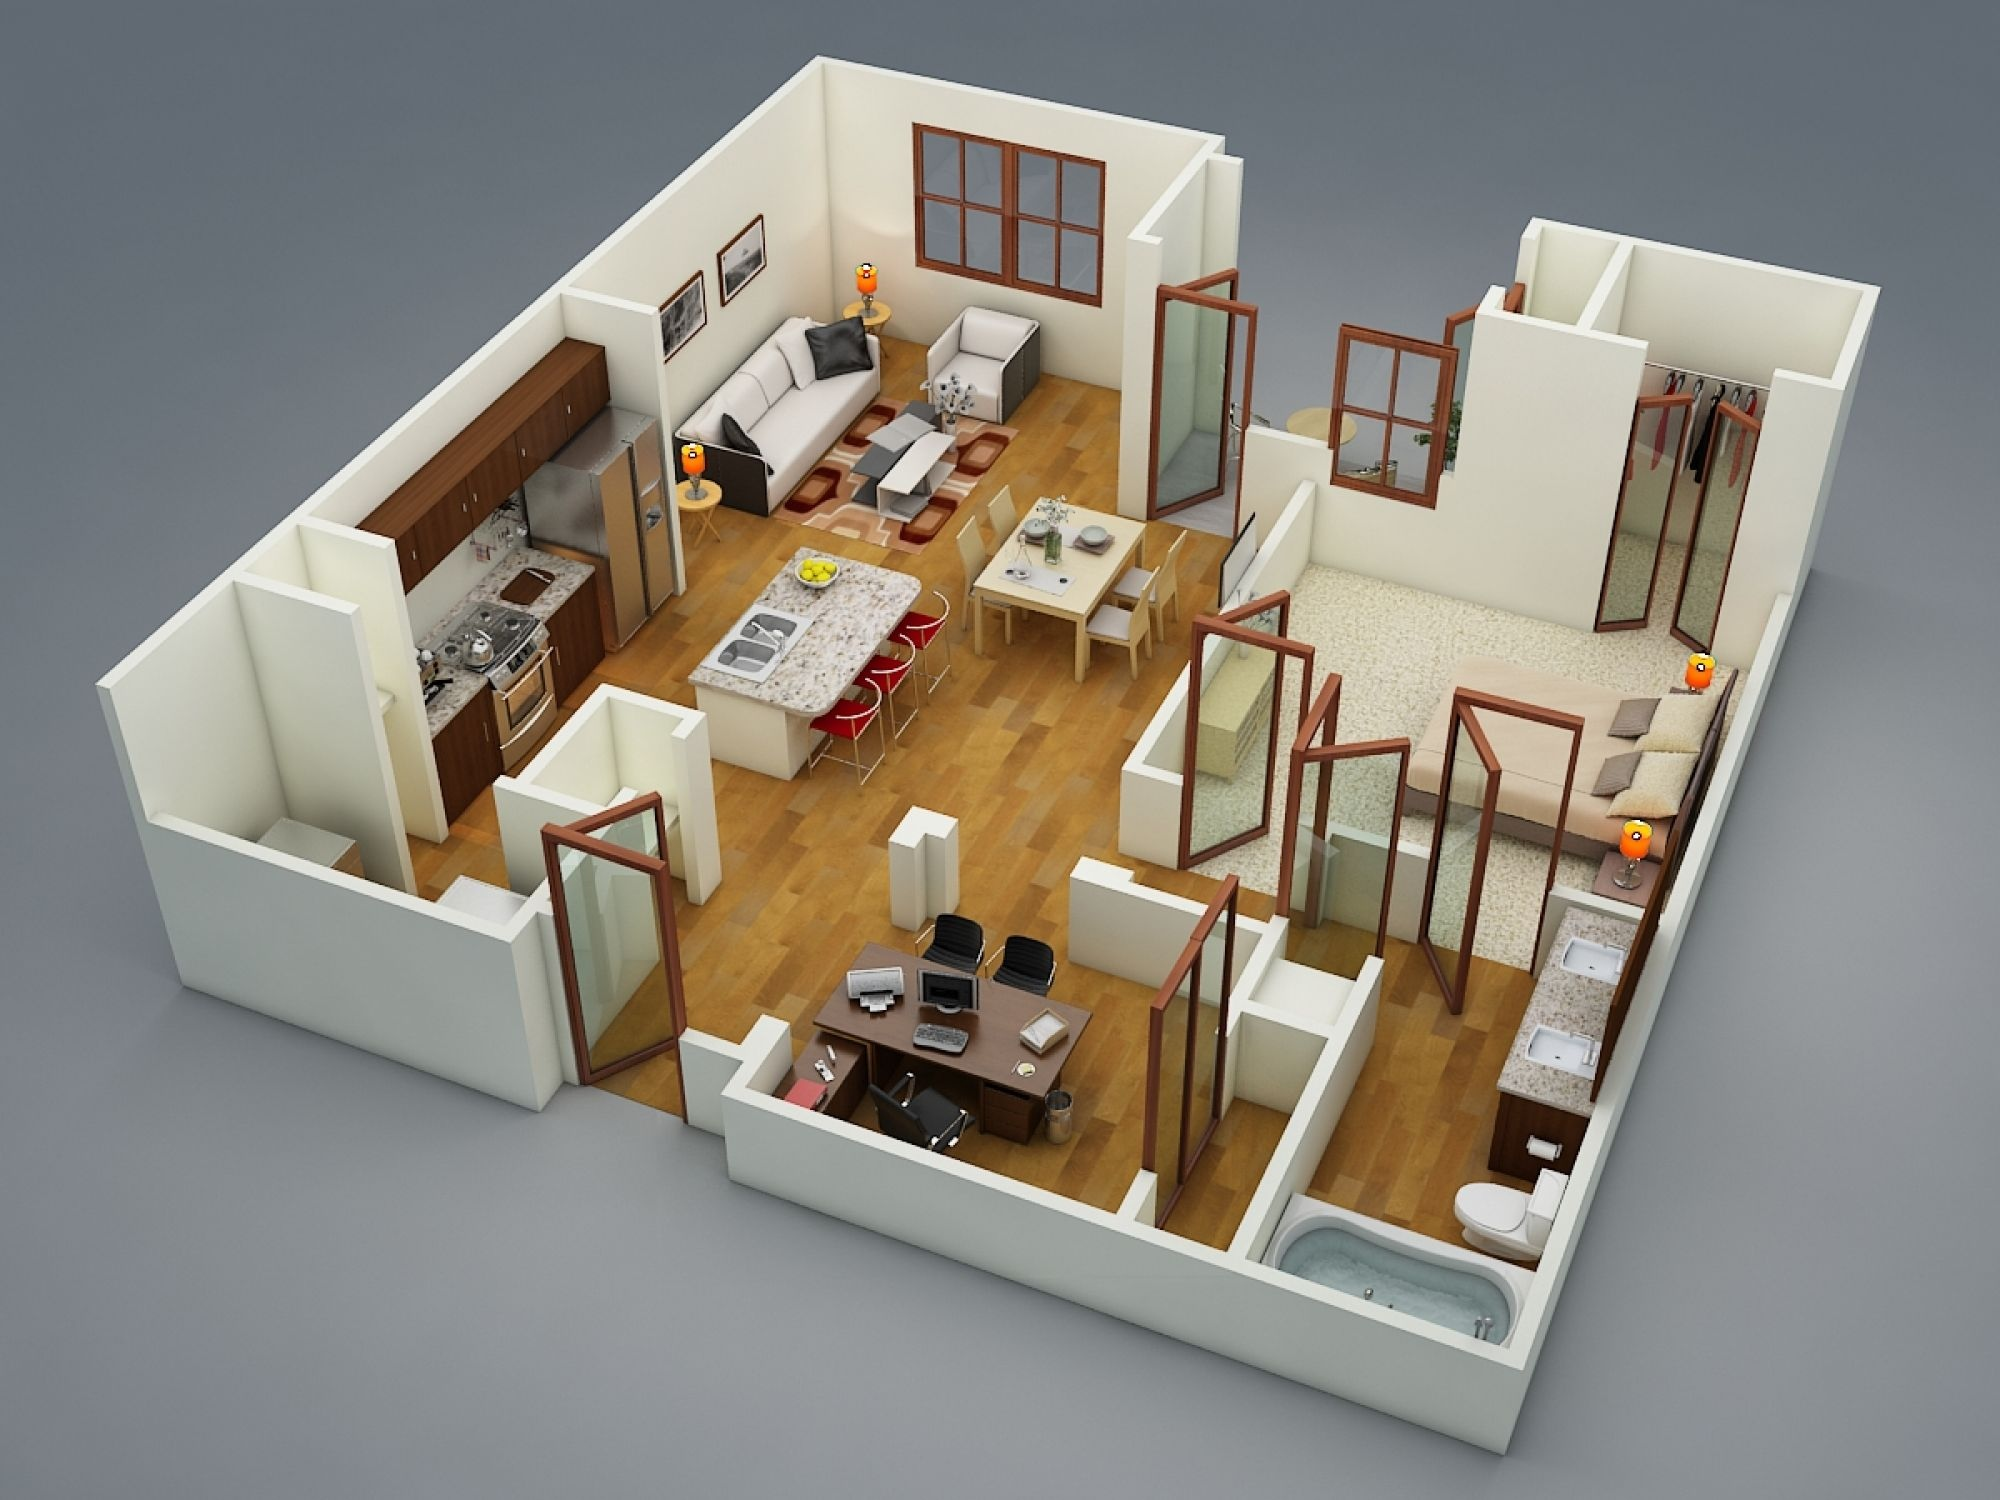 bedroom apartment house plans plans build kid bed inspired unique house frame